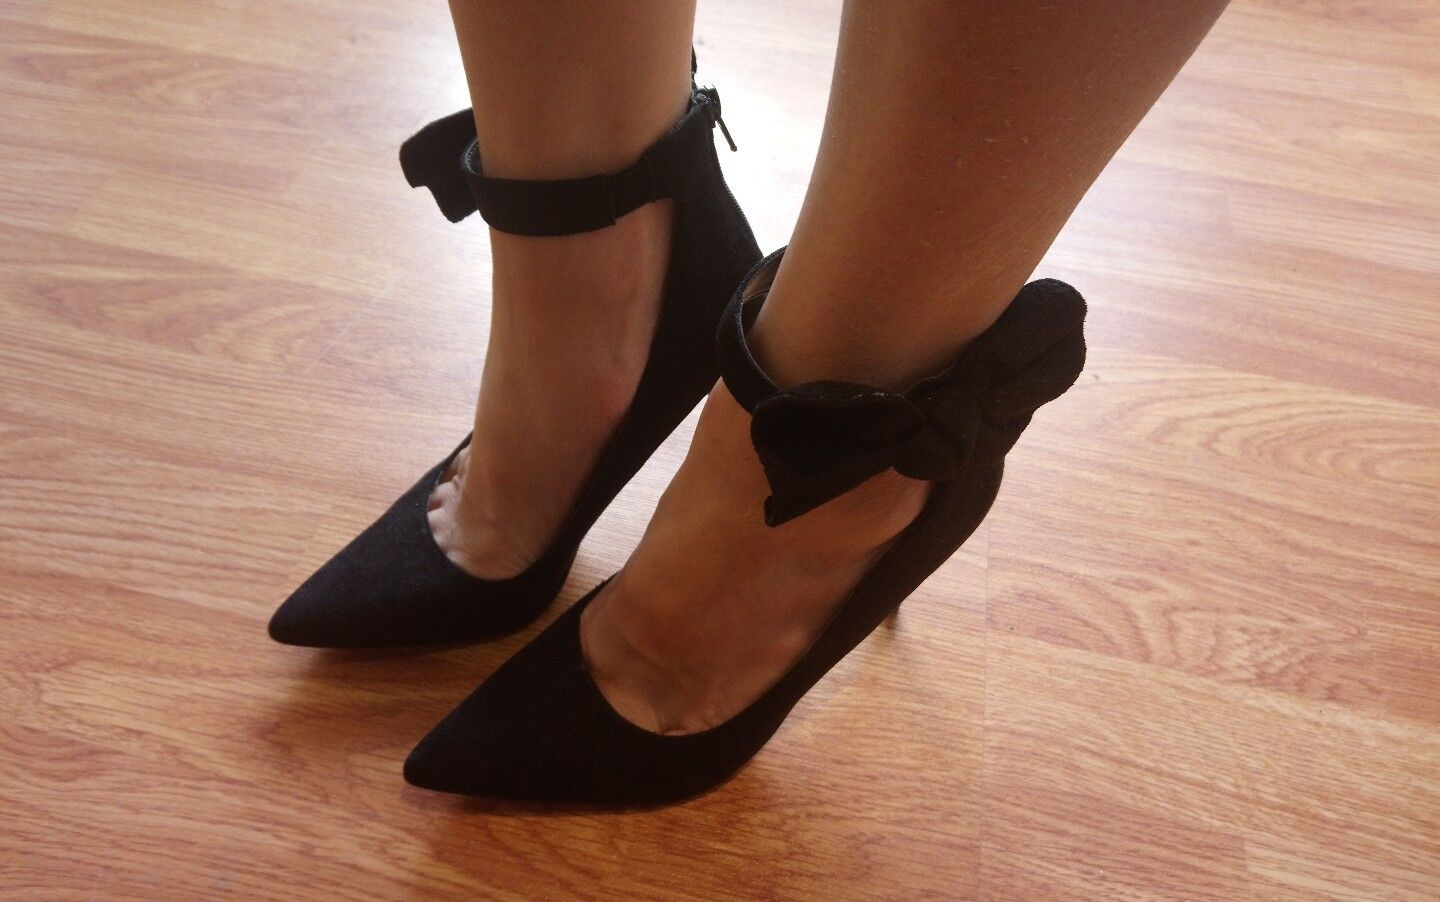 Women Ladies New Black Bow Heels Cute Party Club Shoes Sandals Size 6.5